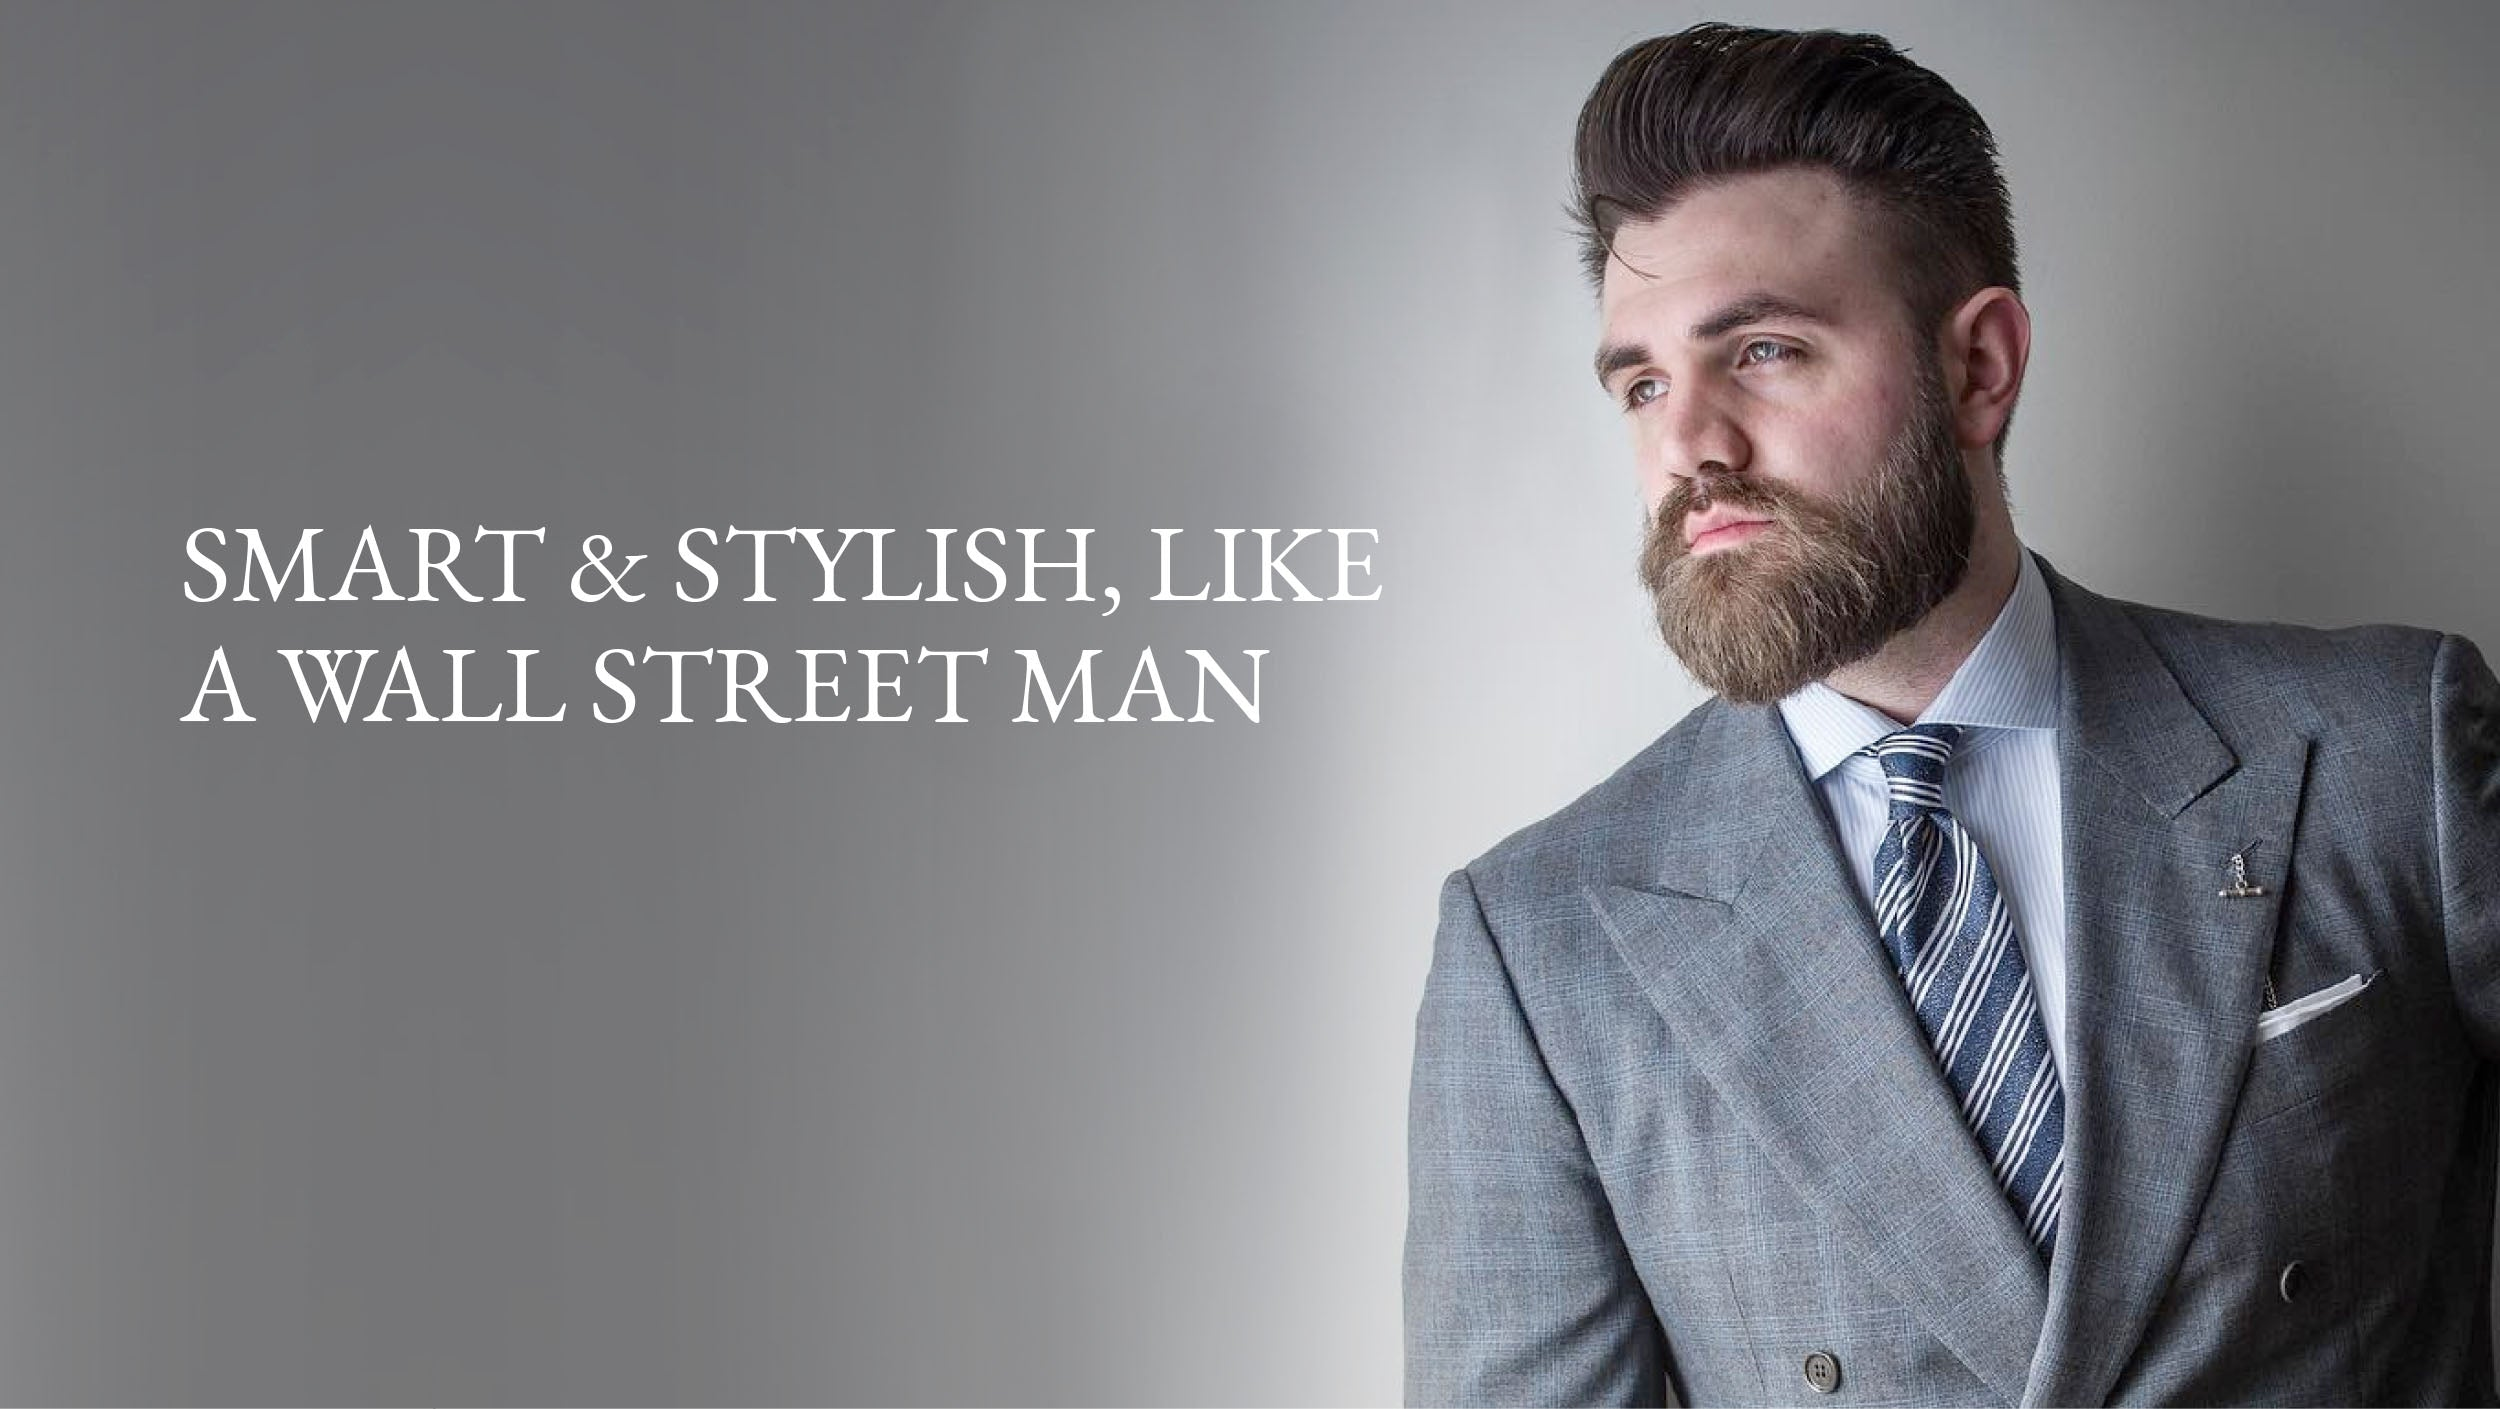 SMART & STYLISH, LIKE  A WALL STREET MAN